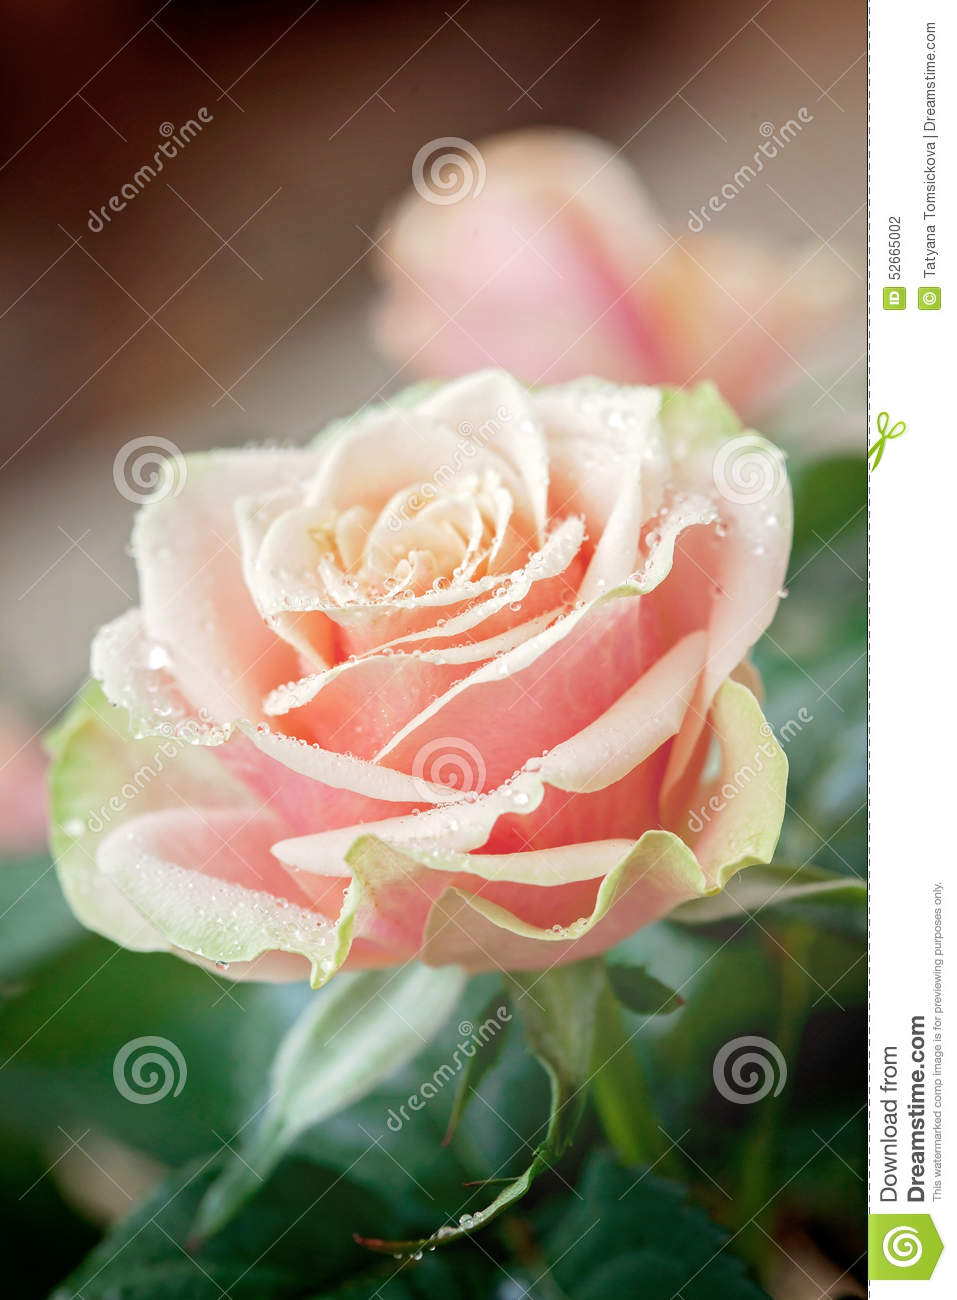 Red and orange rose flower close-up photo with shallow depth of